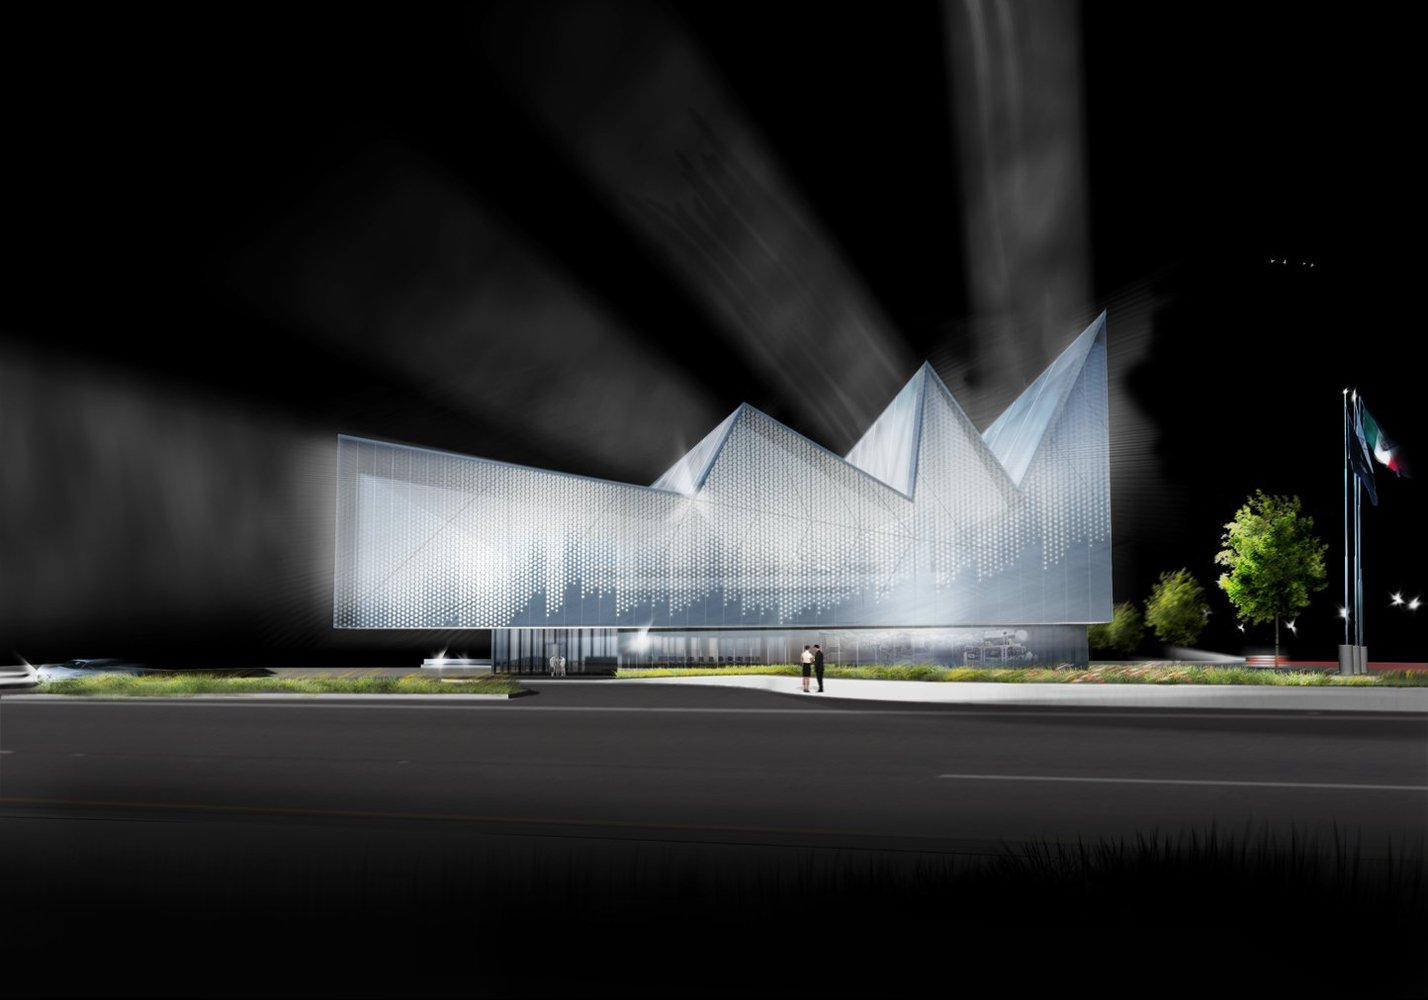 Research and Technology Innovation Park / Brooks + ScarpaCourtesy of Brooks + Scarpa & Gallery of Research and Technology Innovation Park / Brooks + Scarpa ...